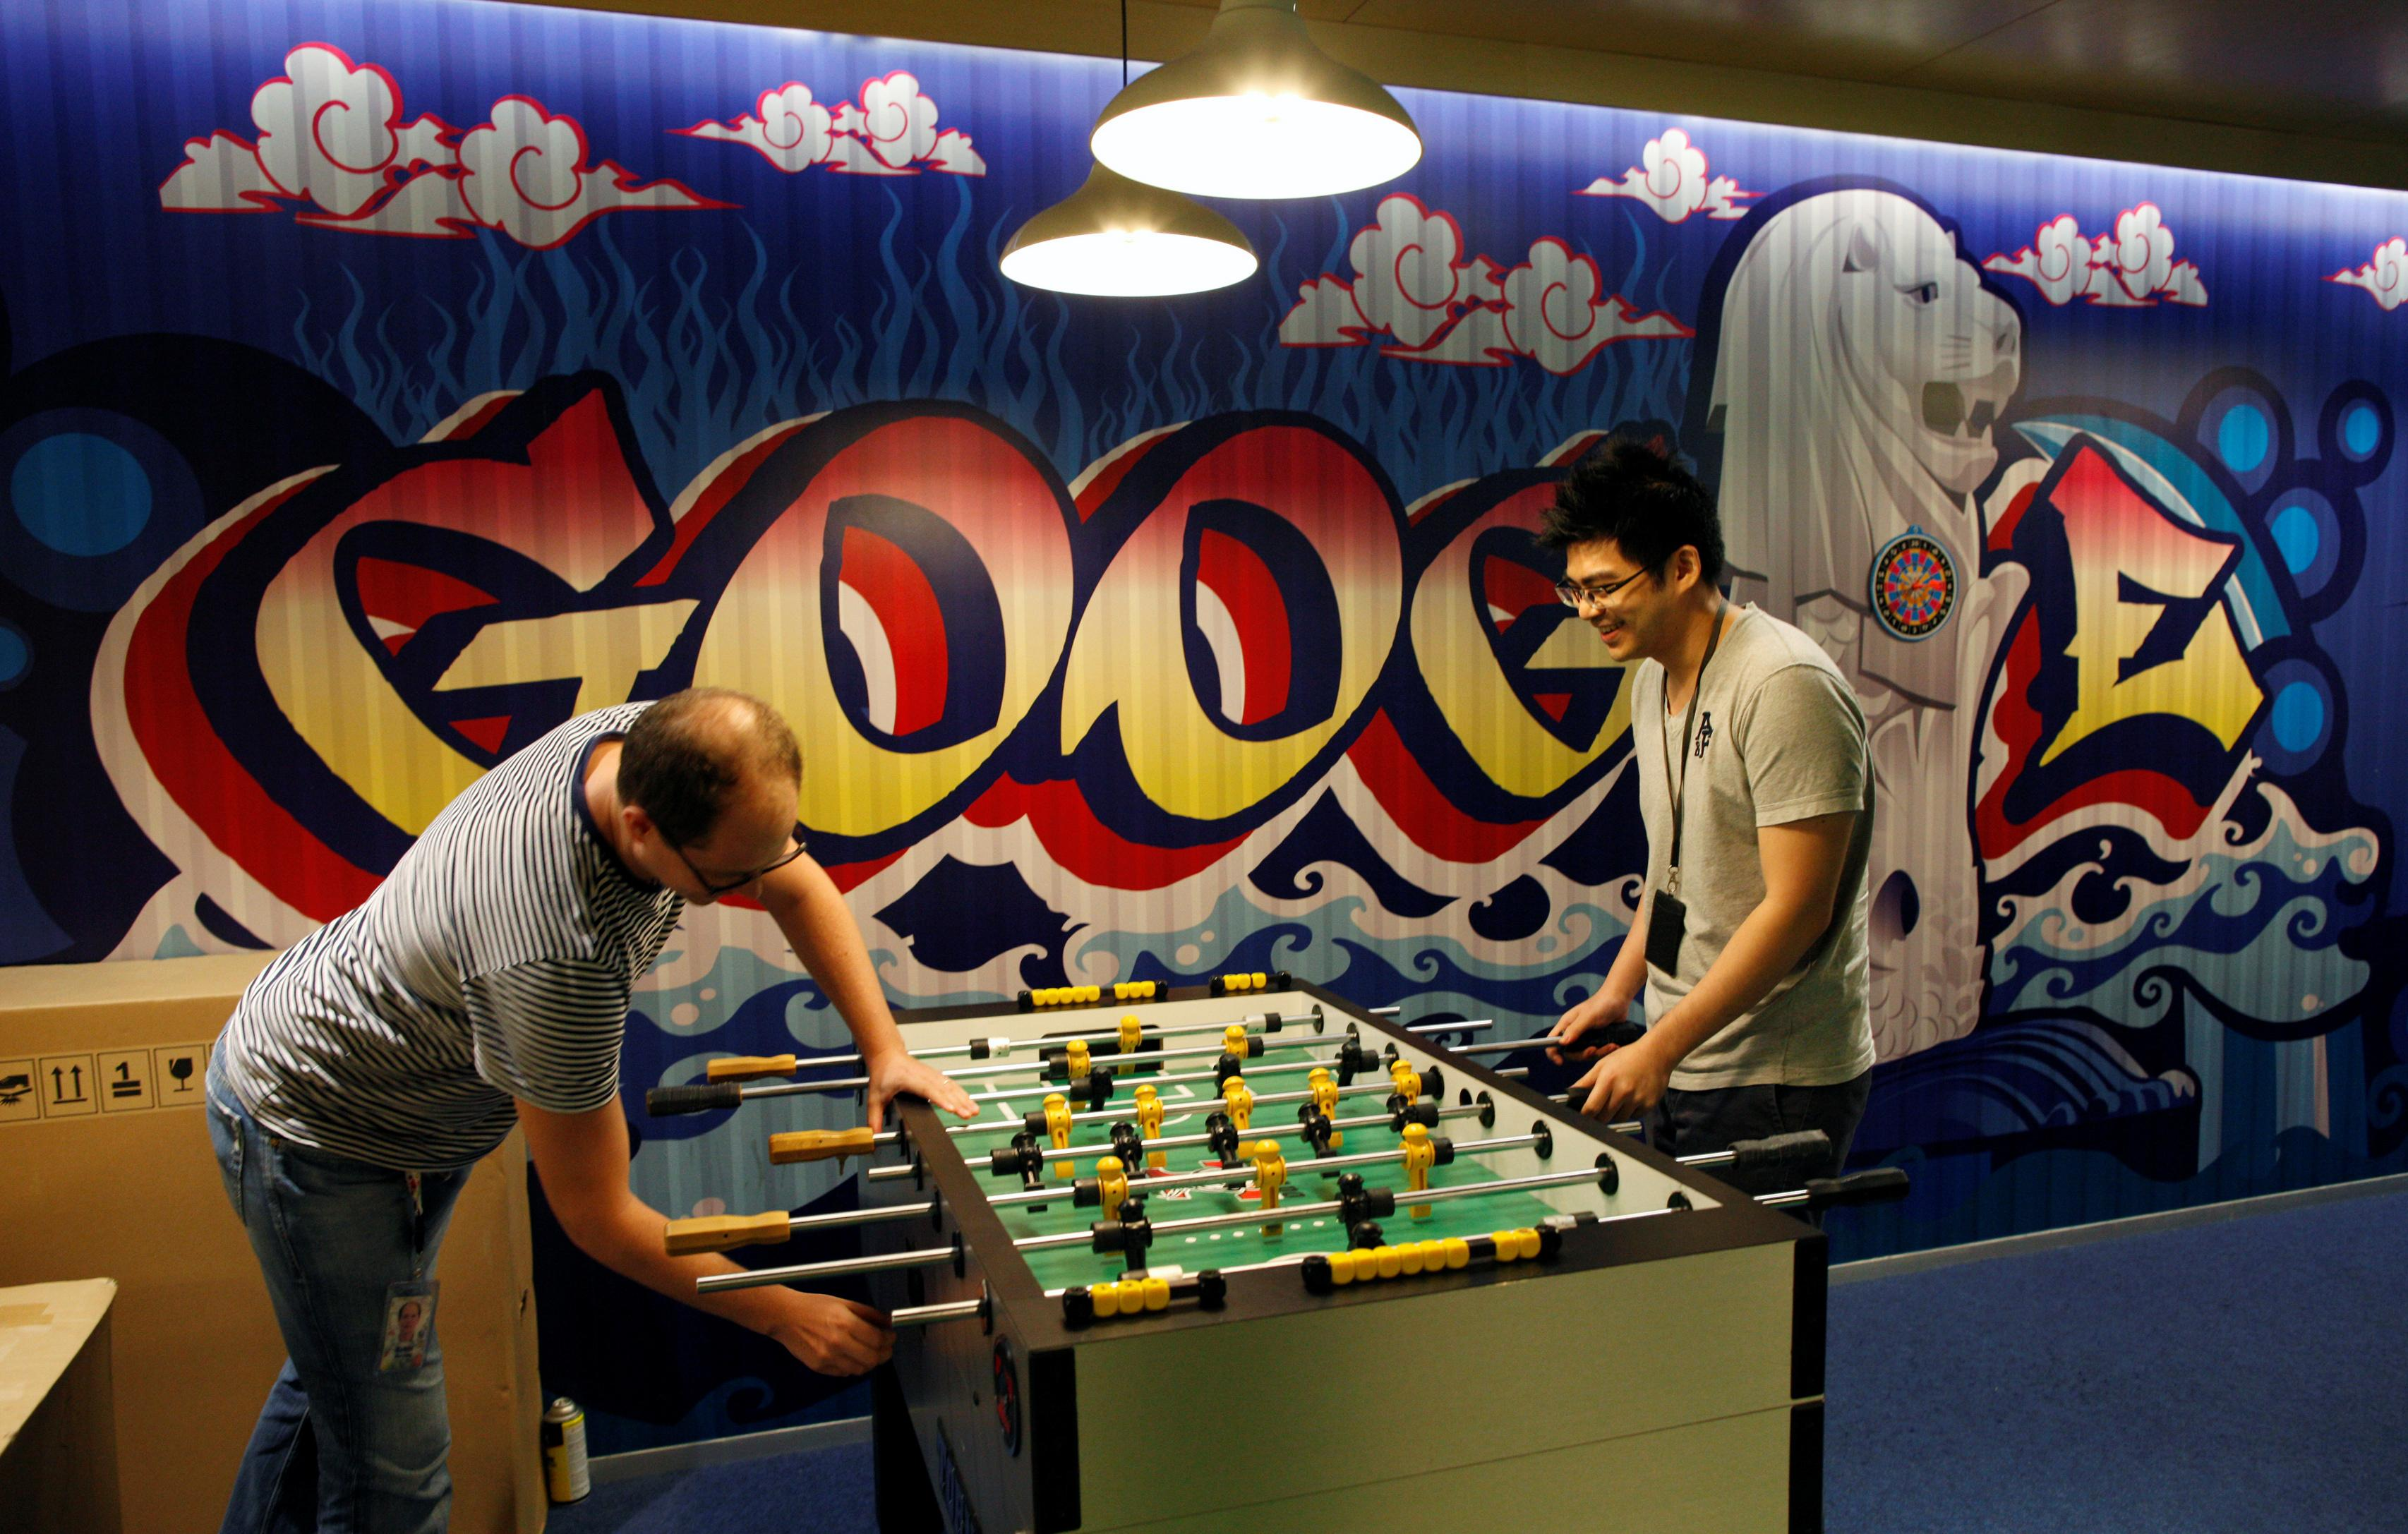 Google's communications manager Robin Moroney plays table soccer with a Google employee at a recreational area of their Singapore office, Singapore July 8, 2013. Edgar Su